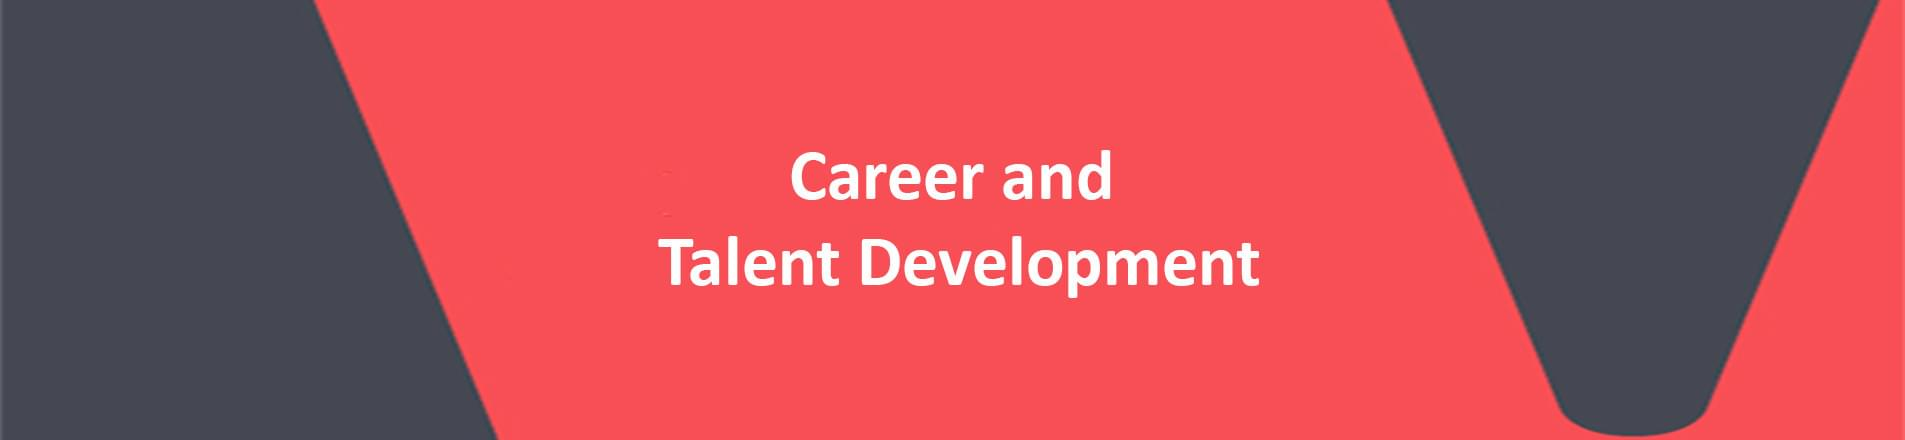 The words Career and Talent Development in white on a red VERCIDA branded background